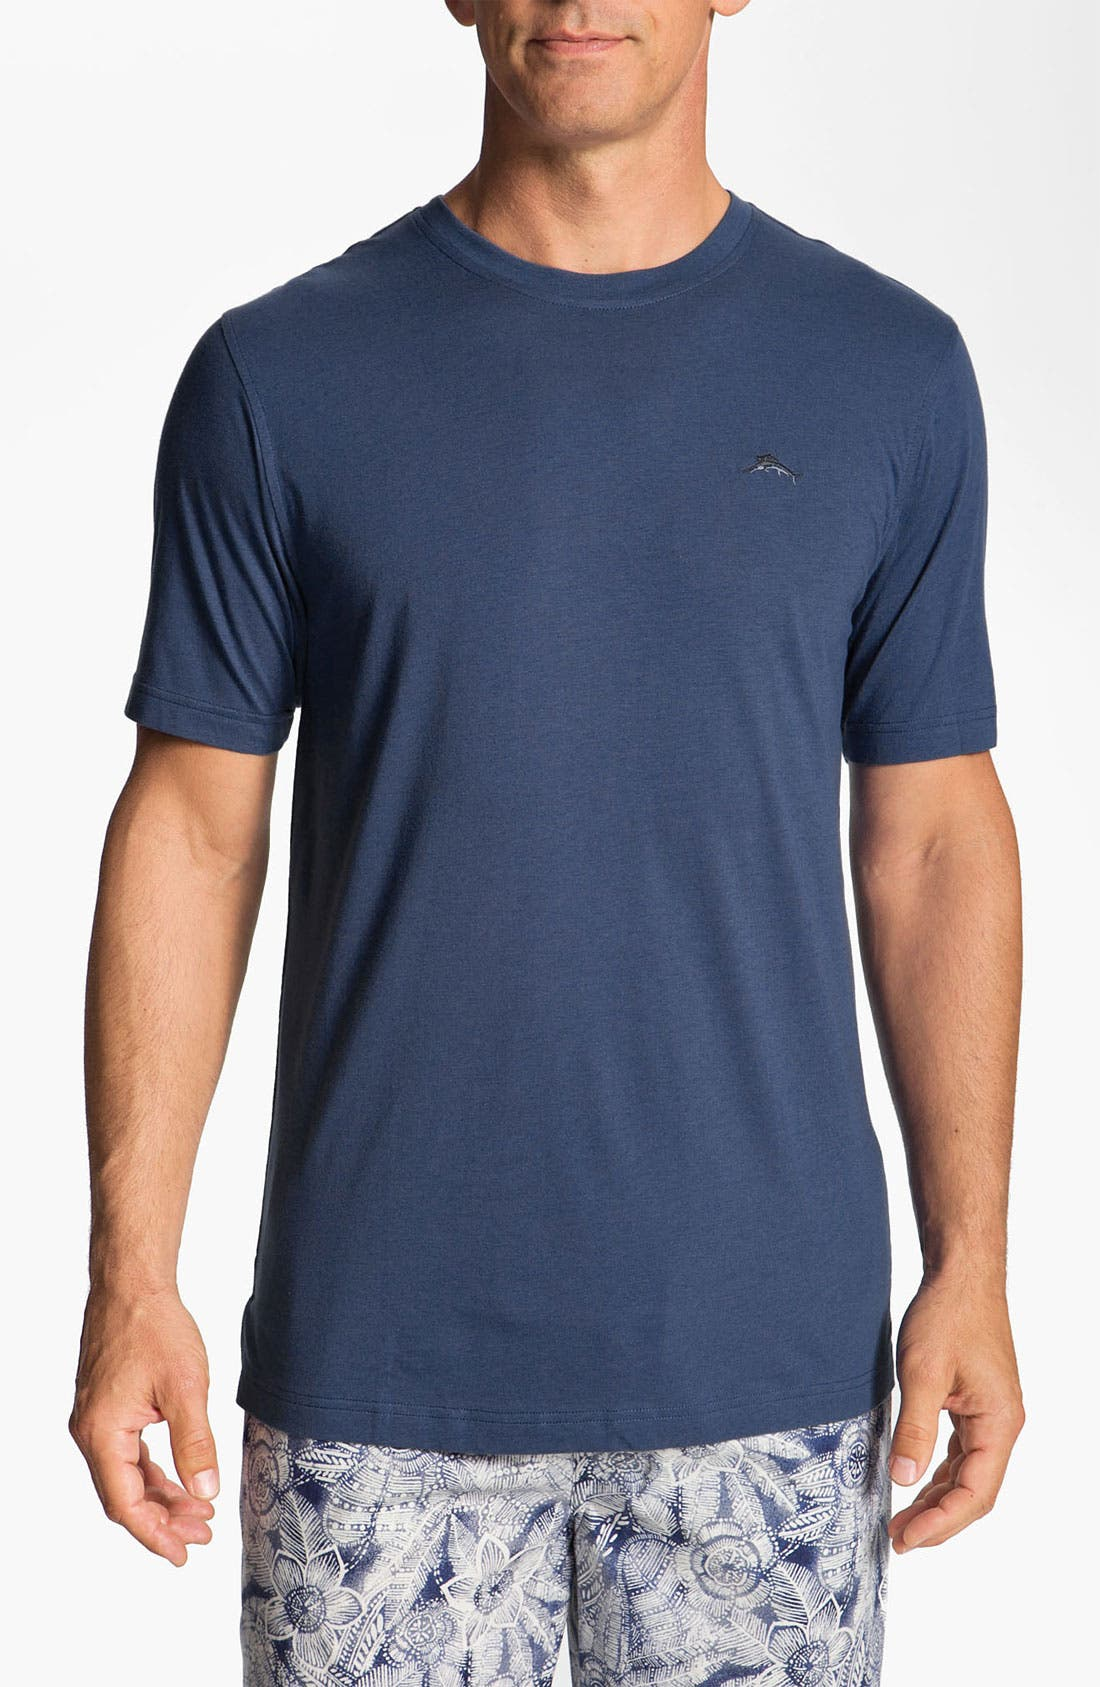 Alternate Image 1 Selected - Tommy Bahama Cotton Blend T-Shirt